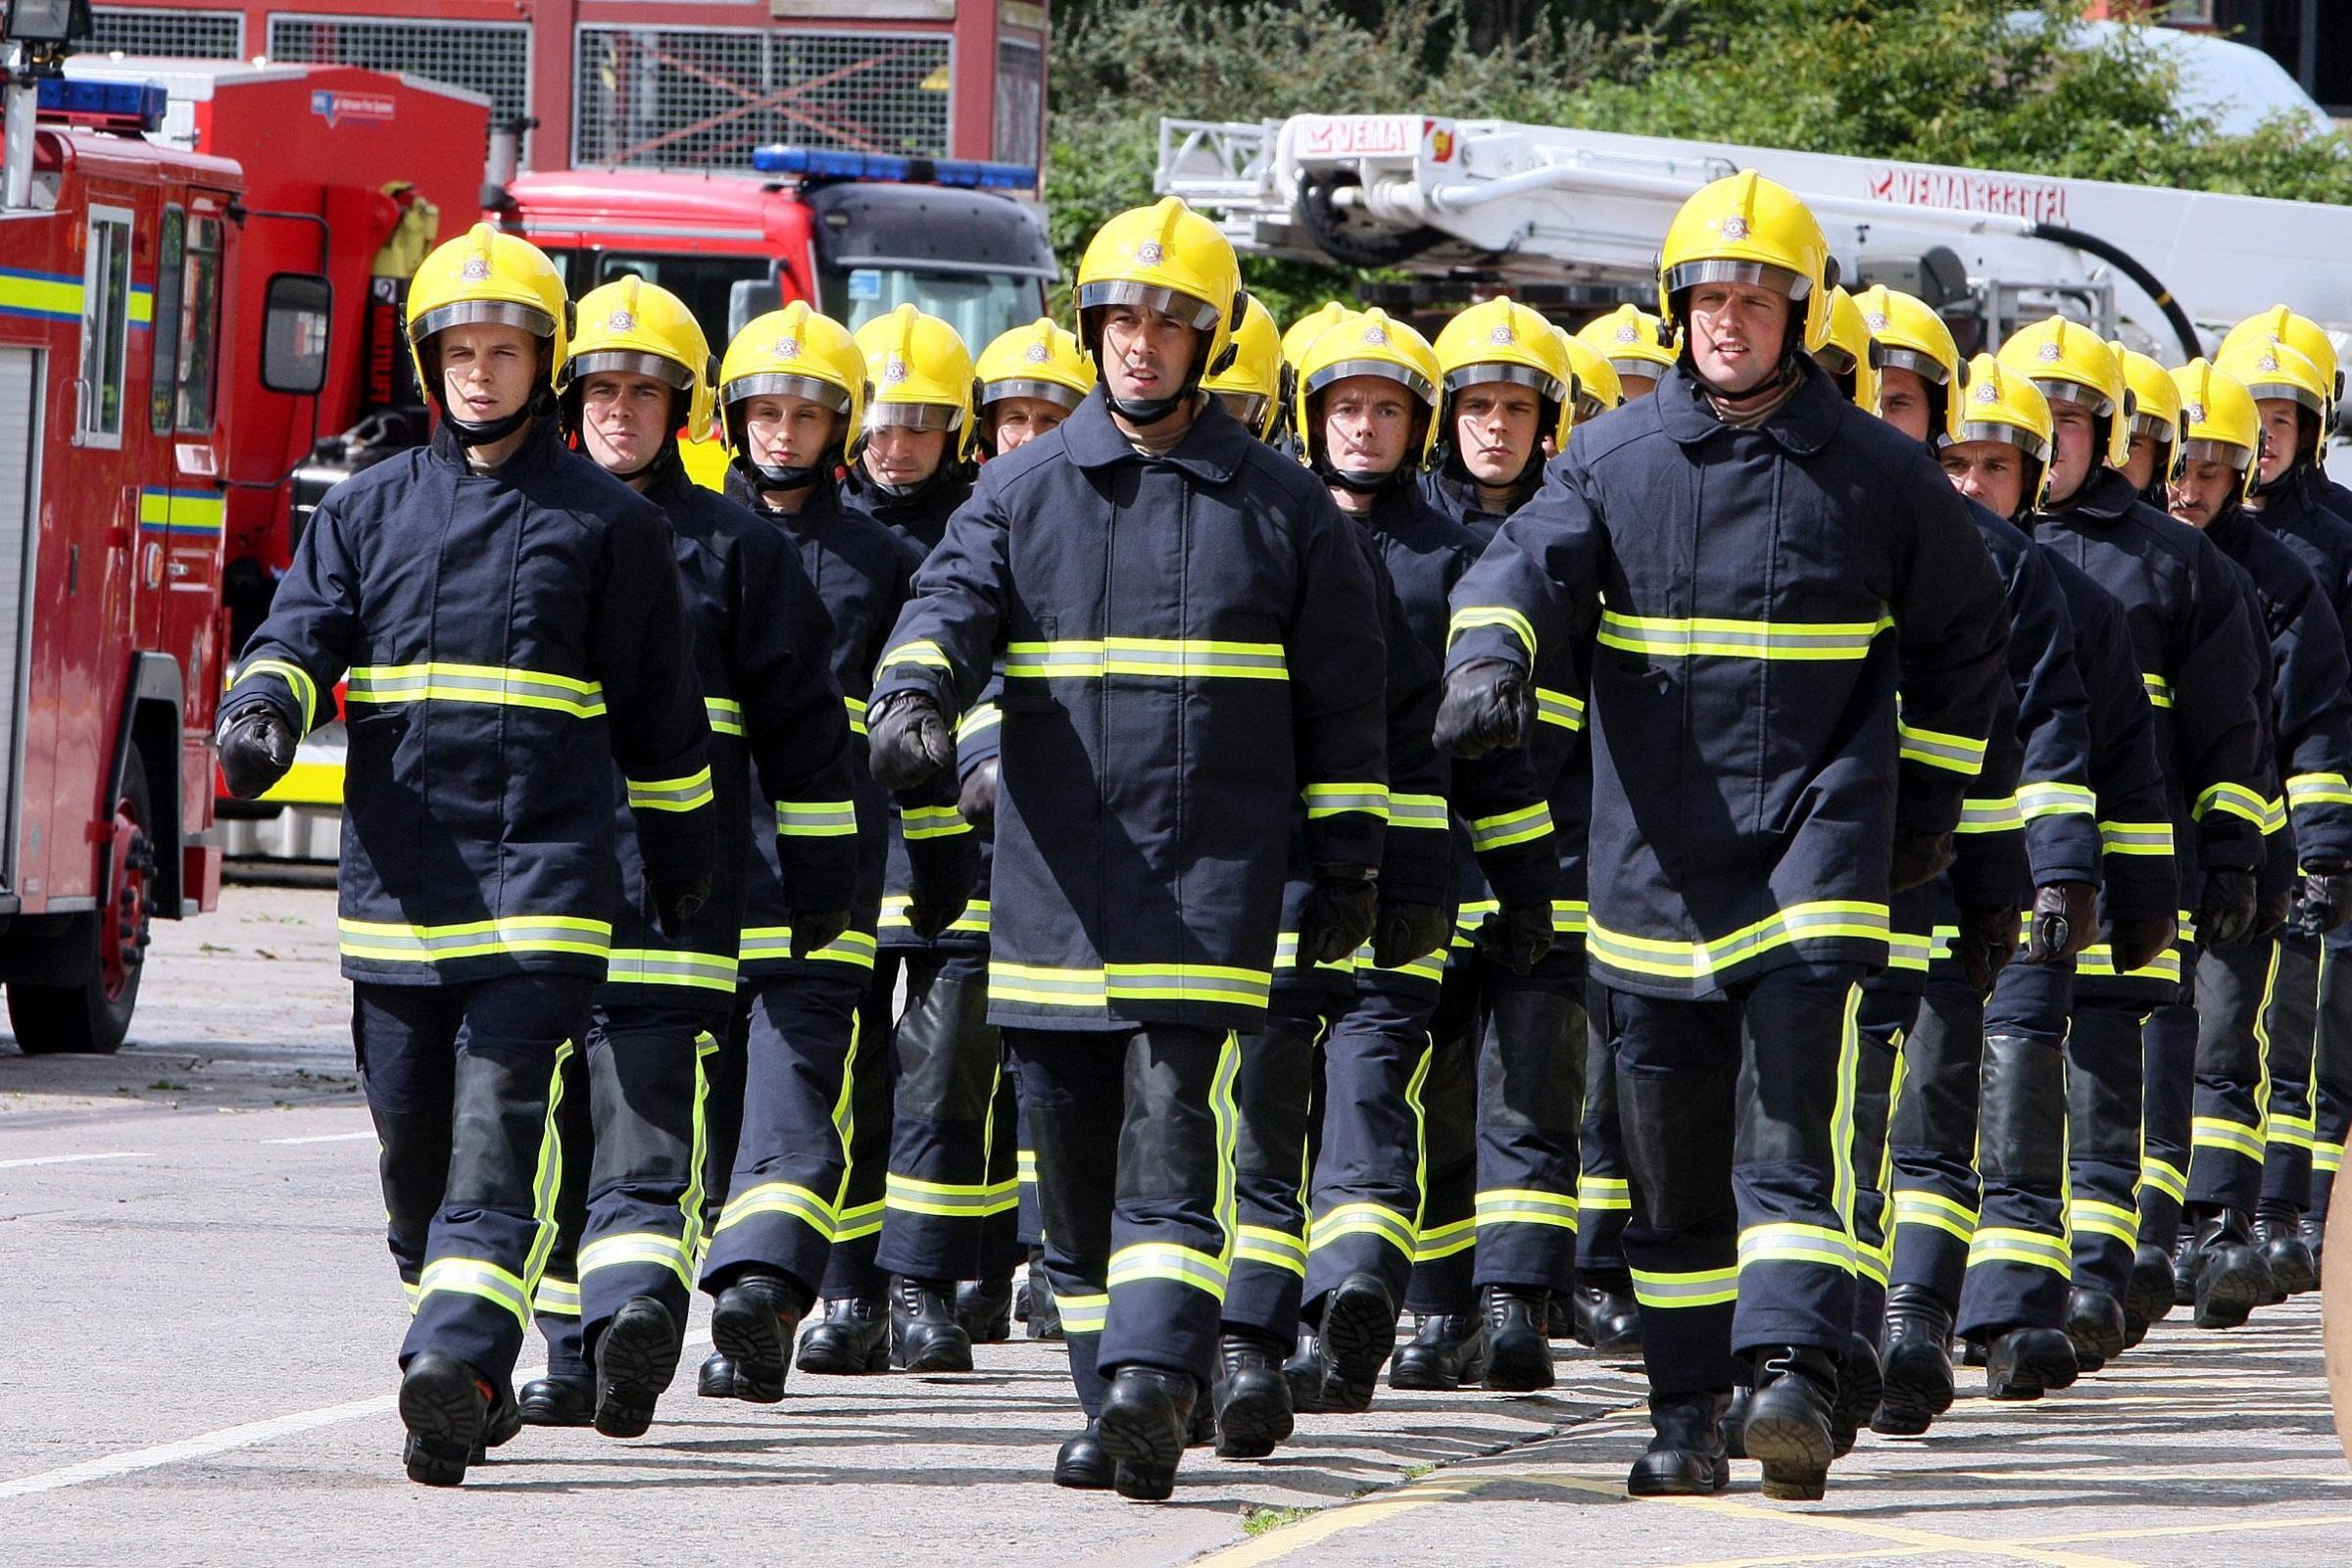 Fire fighters in Northern Ireland